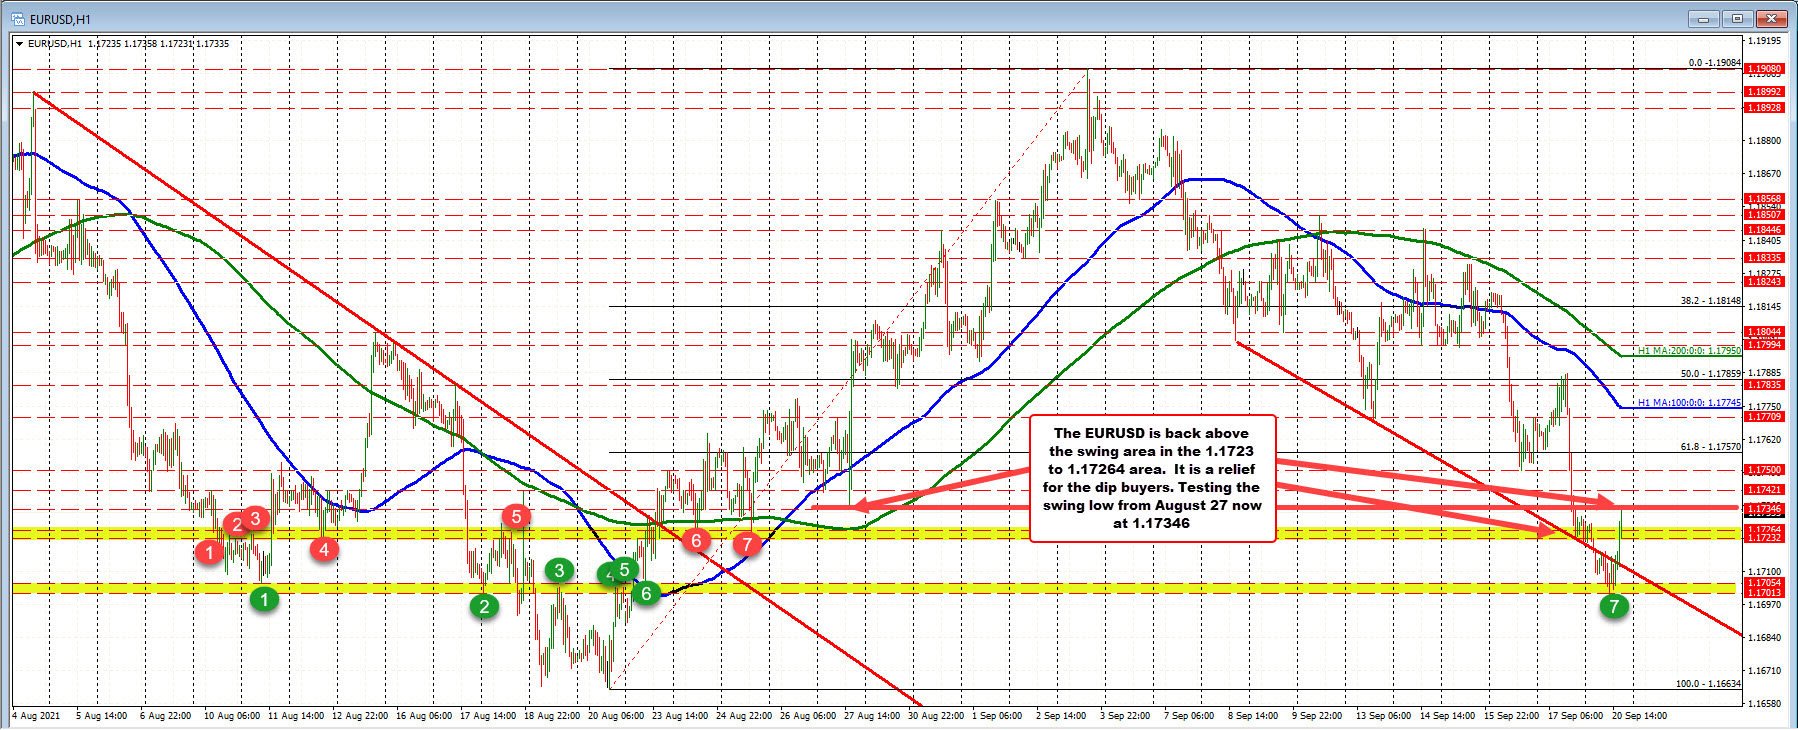 Tests the August 27 swing low_